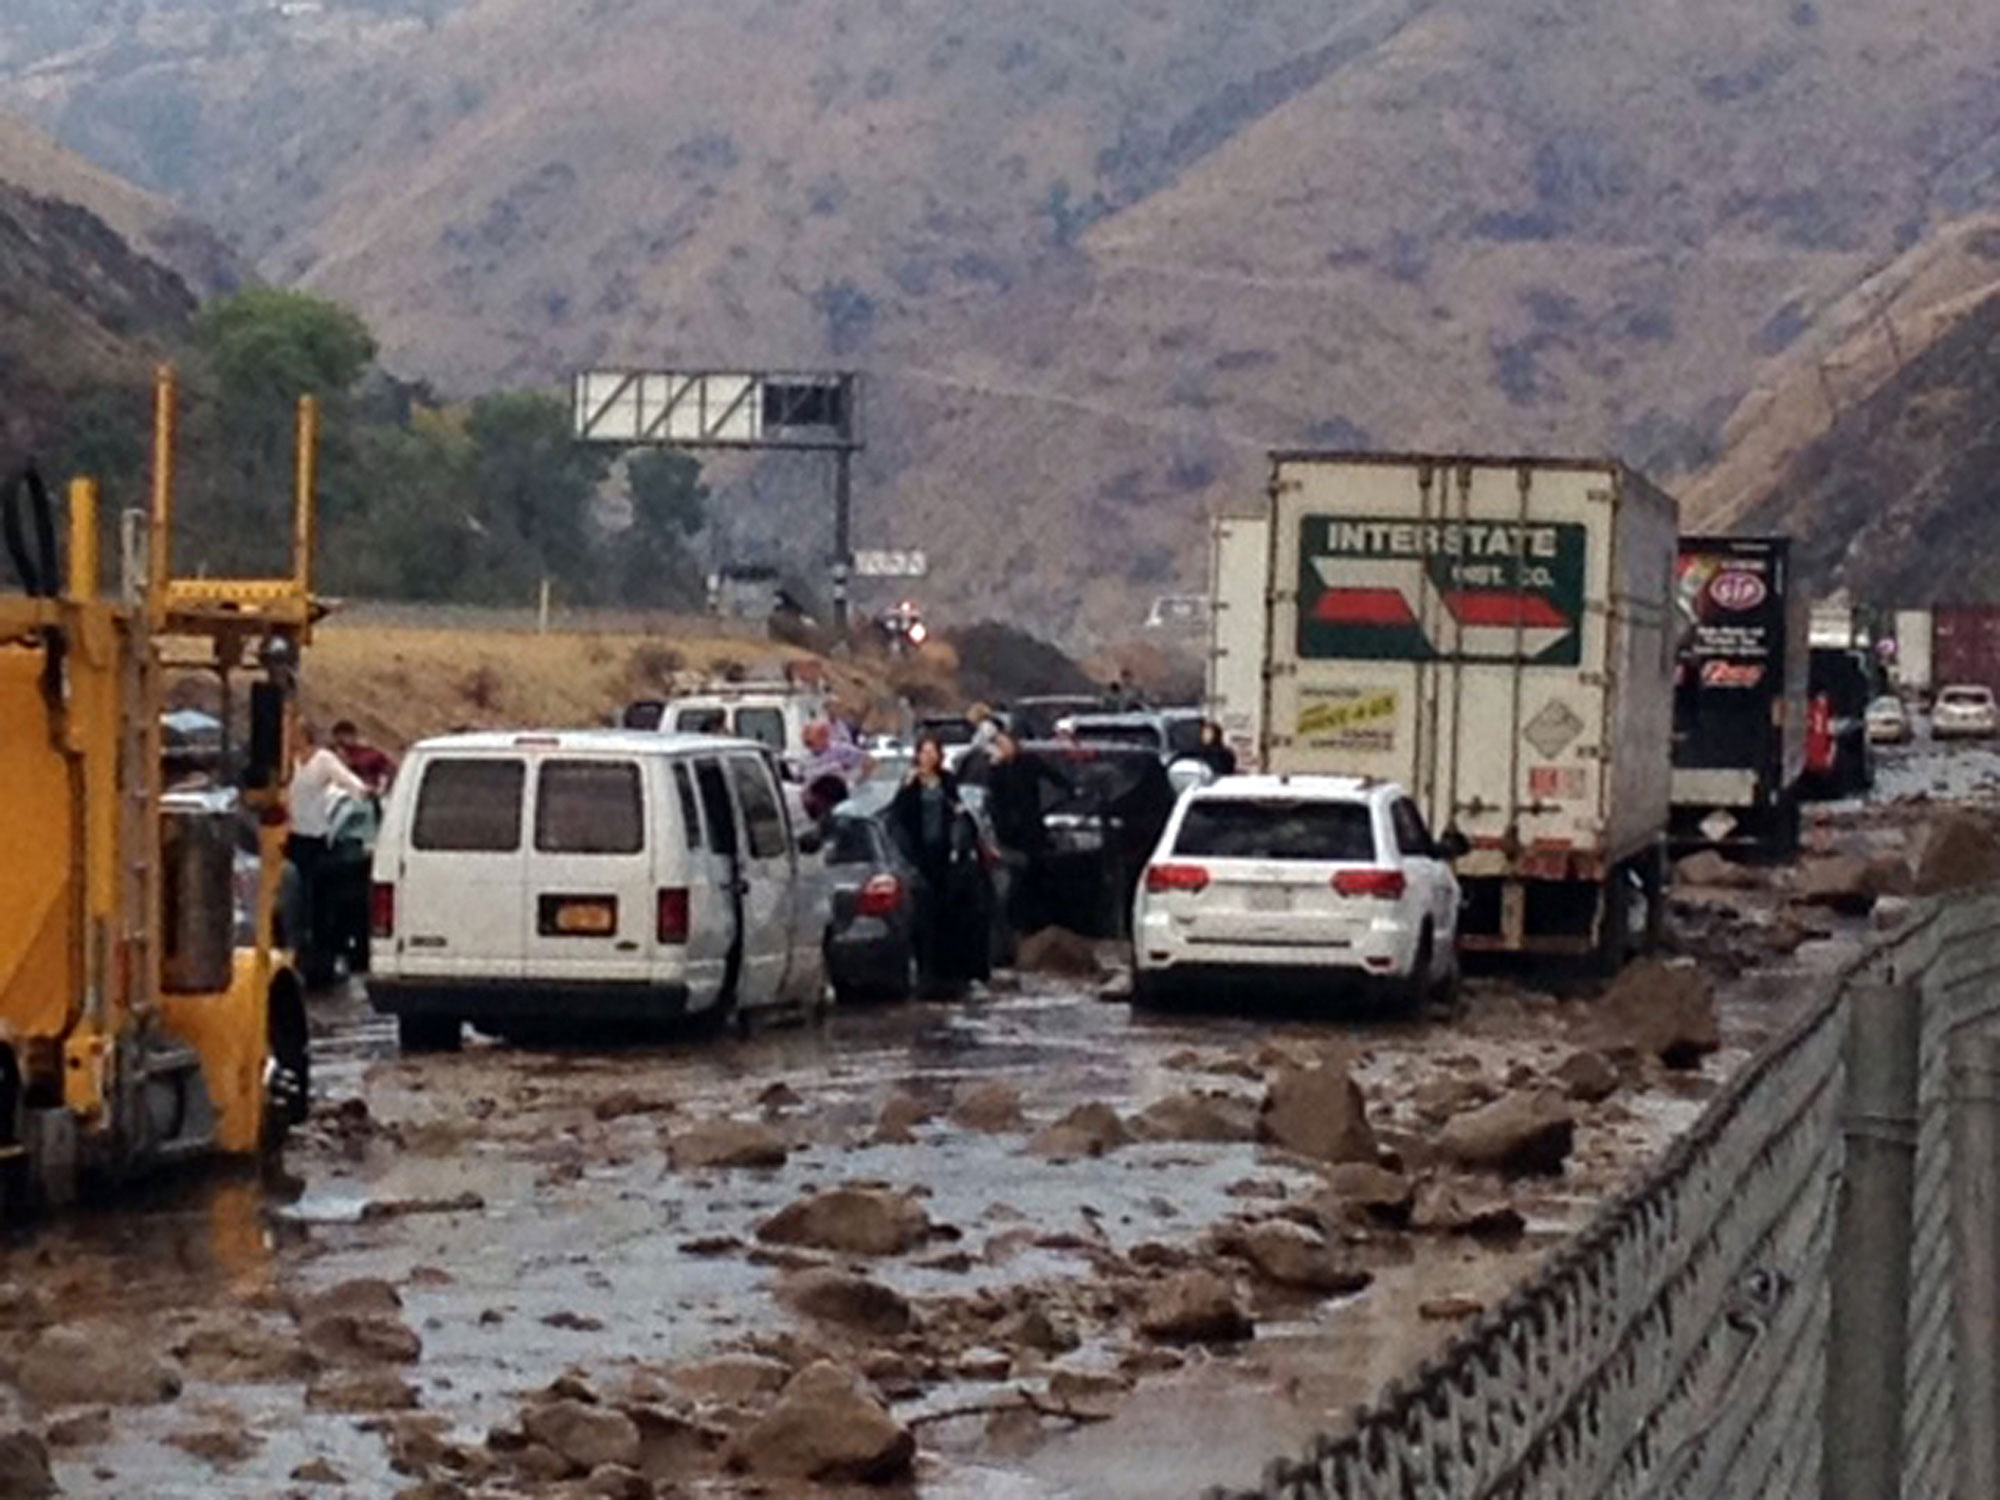 Flash floods happening all over central and southern california AP_mudslide3a_ml_151016